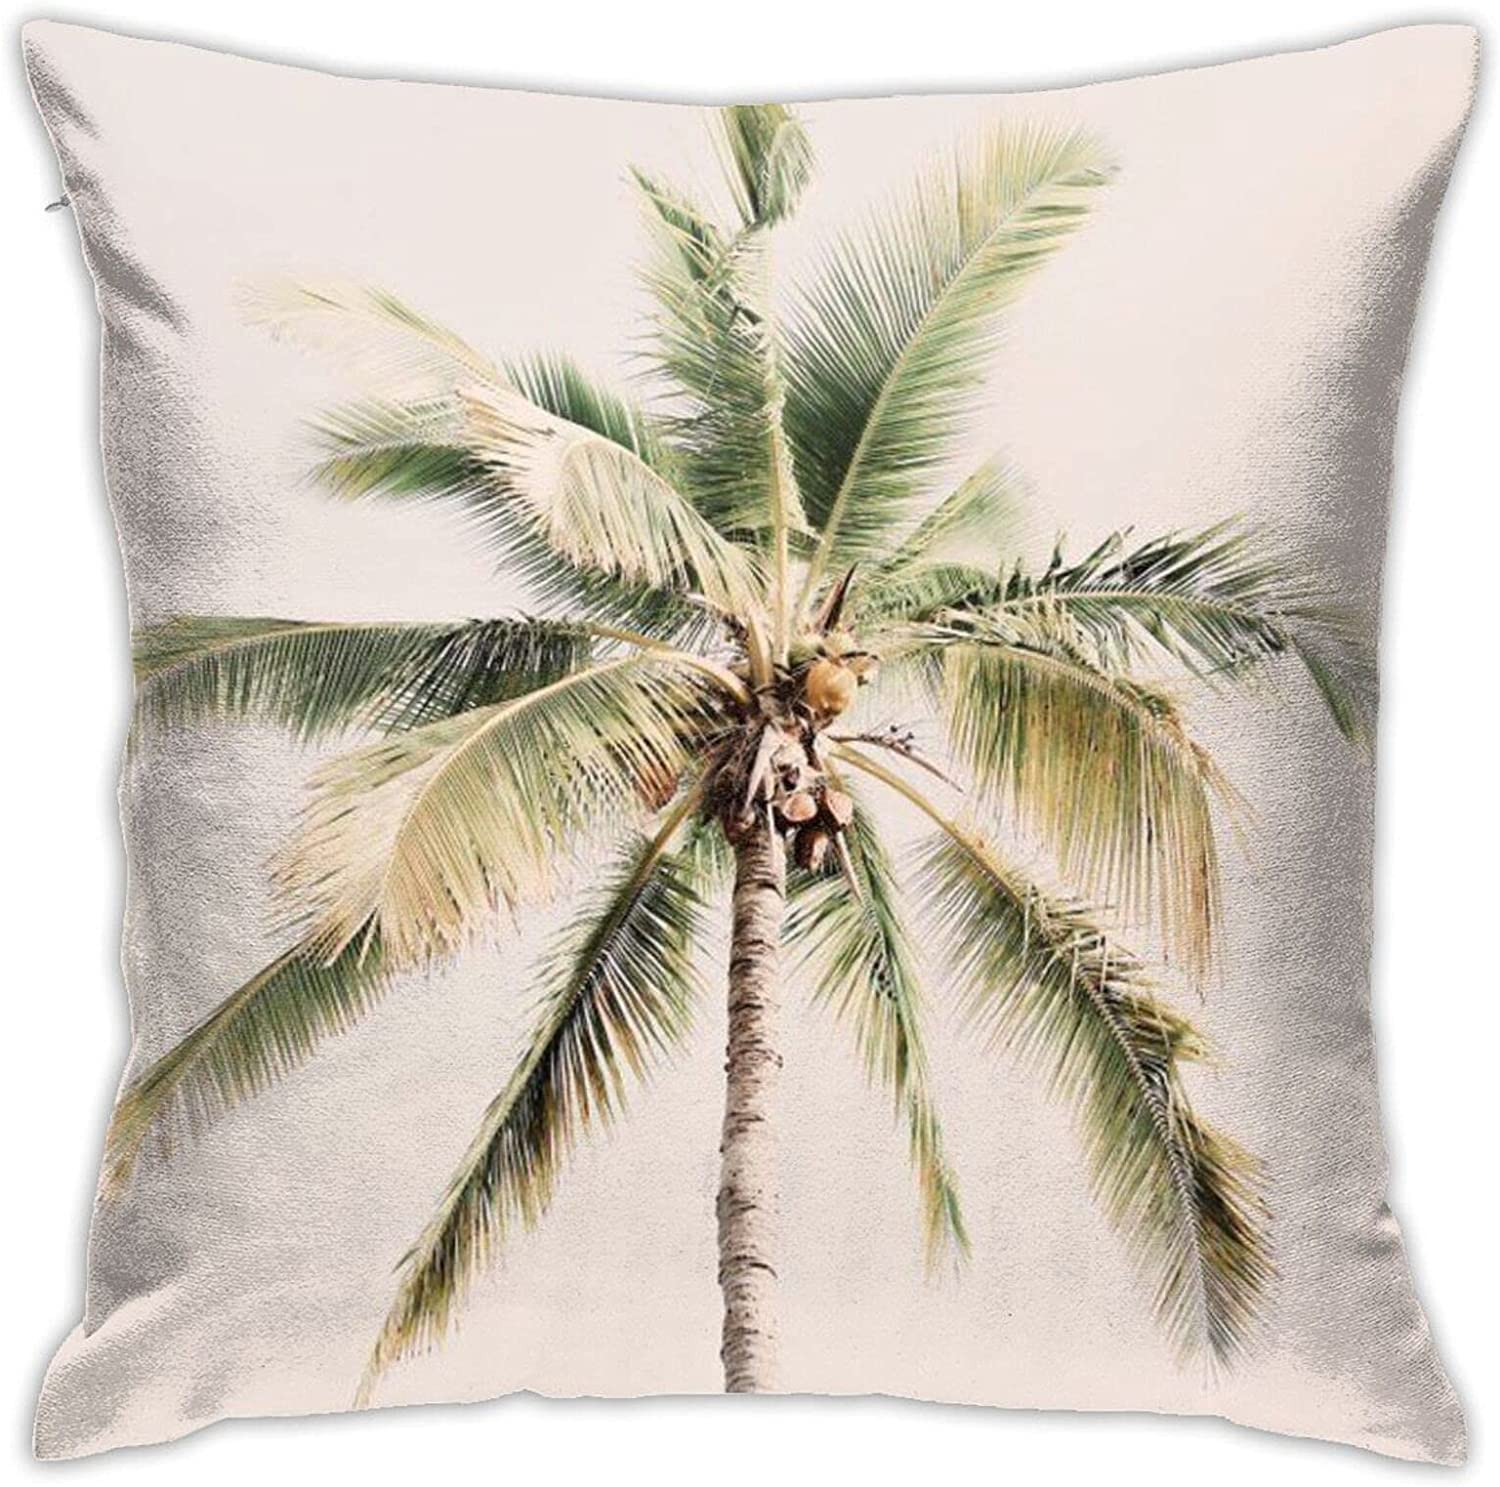 Tropical Palm Tree Throw Pillow Milwaukee Mall Case Ho Cushion Square for Cover 2021 new